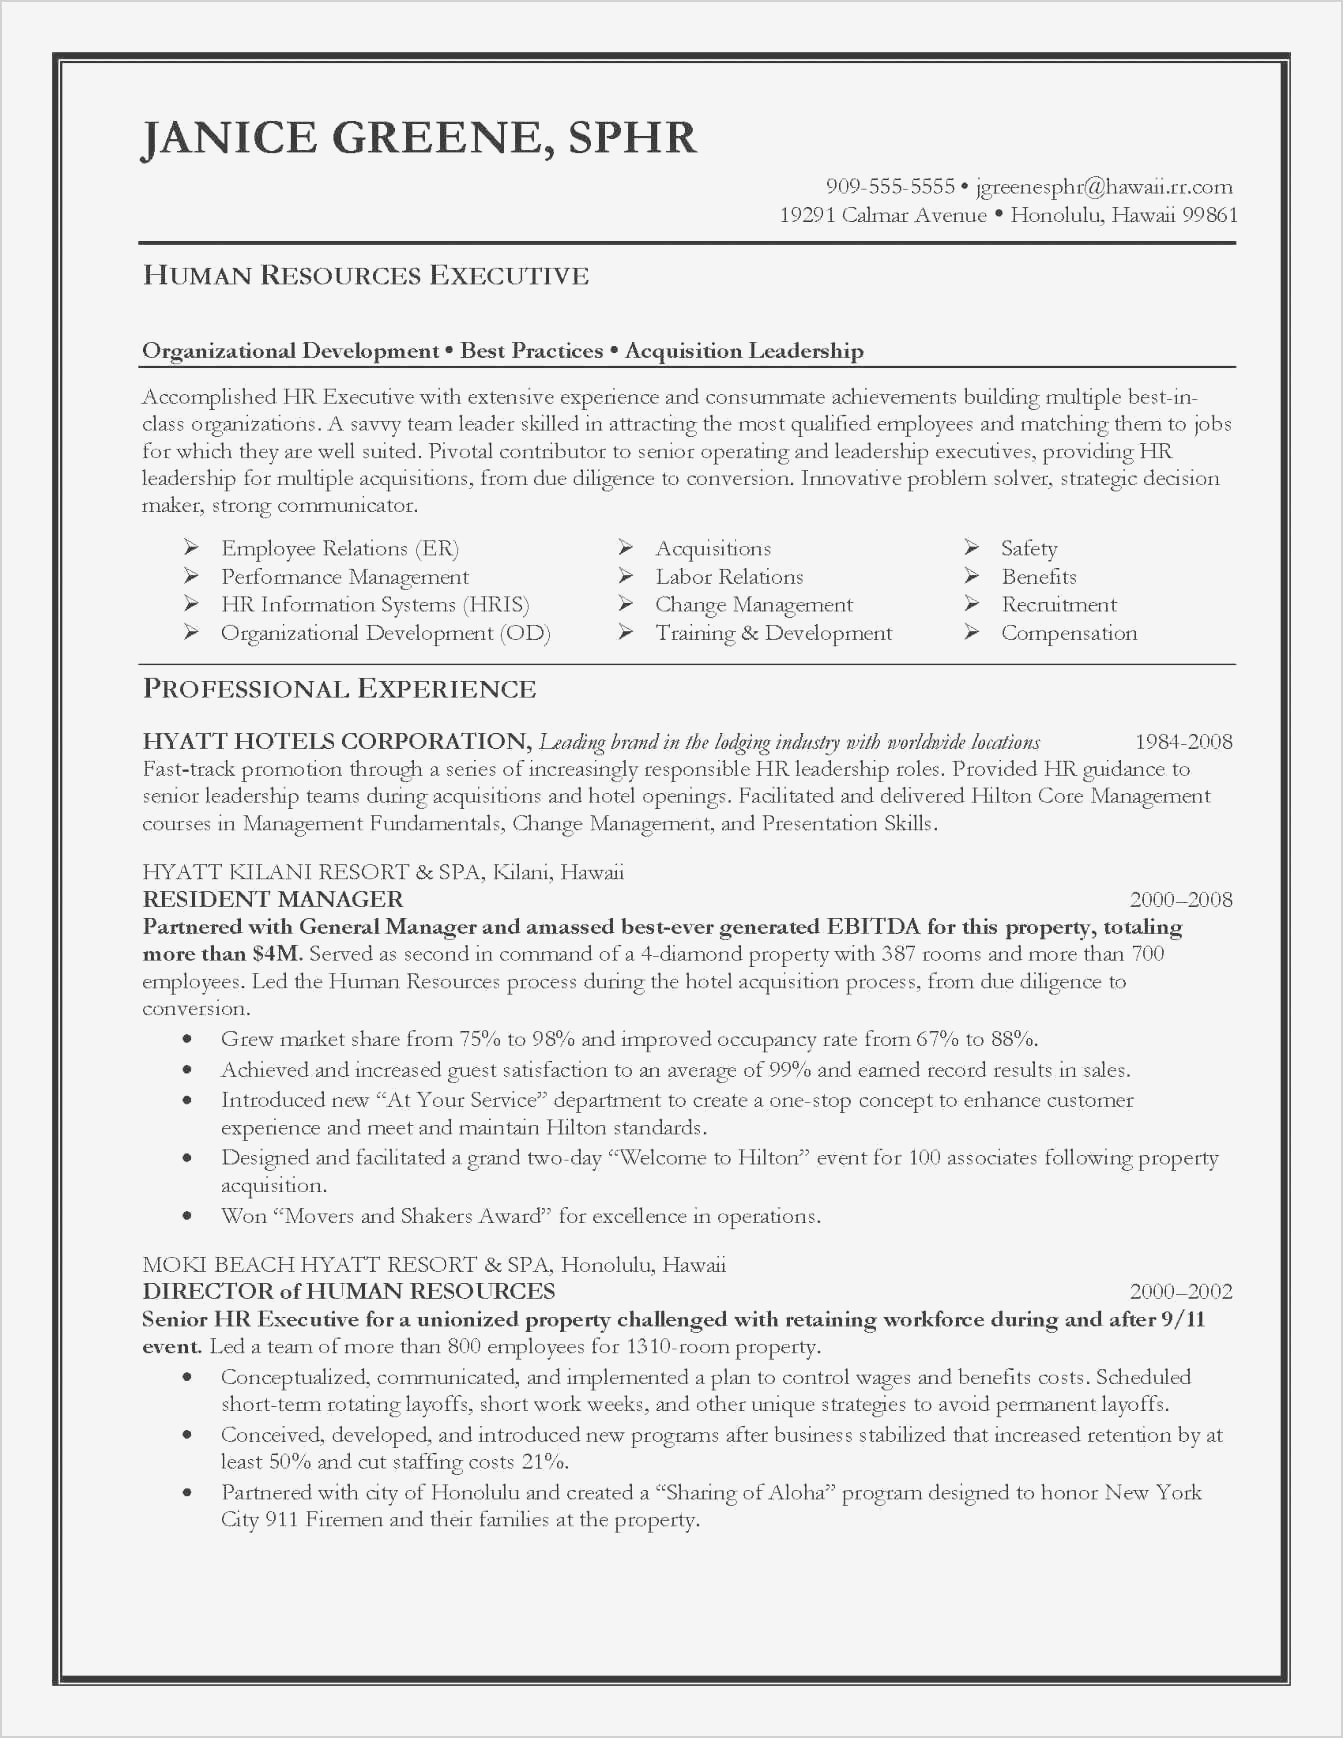 Oil Field Resume - assistant Professor Sample Resumes